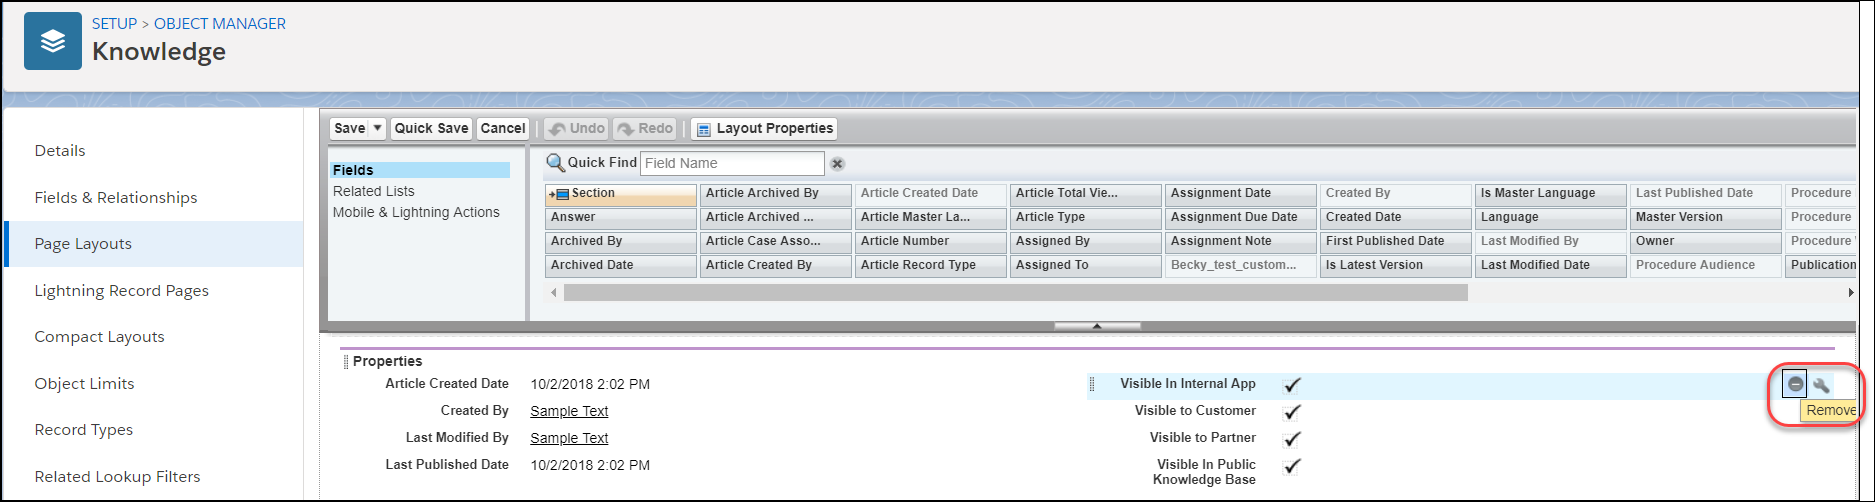 Page Layout Editor scrolled to Properties section with Visible in Internal App and the Remove button highlighted.